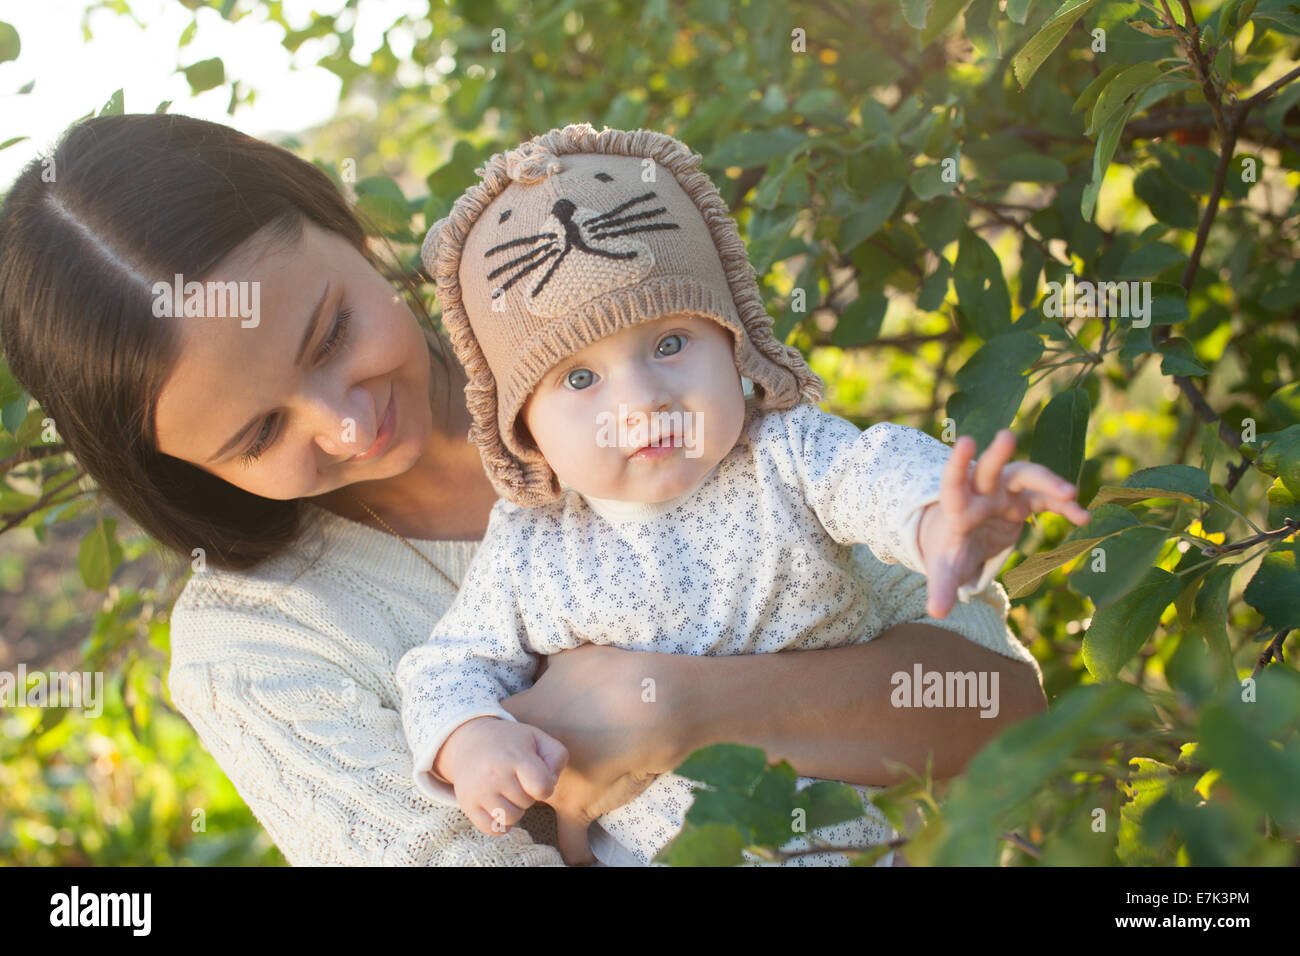 Mother and child in garden - Stock Image